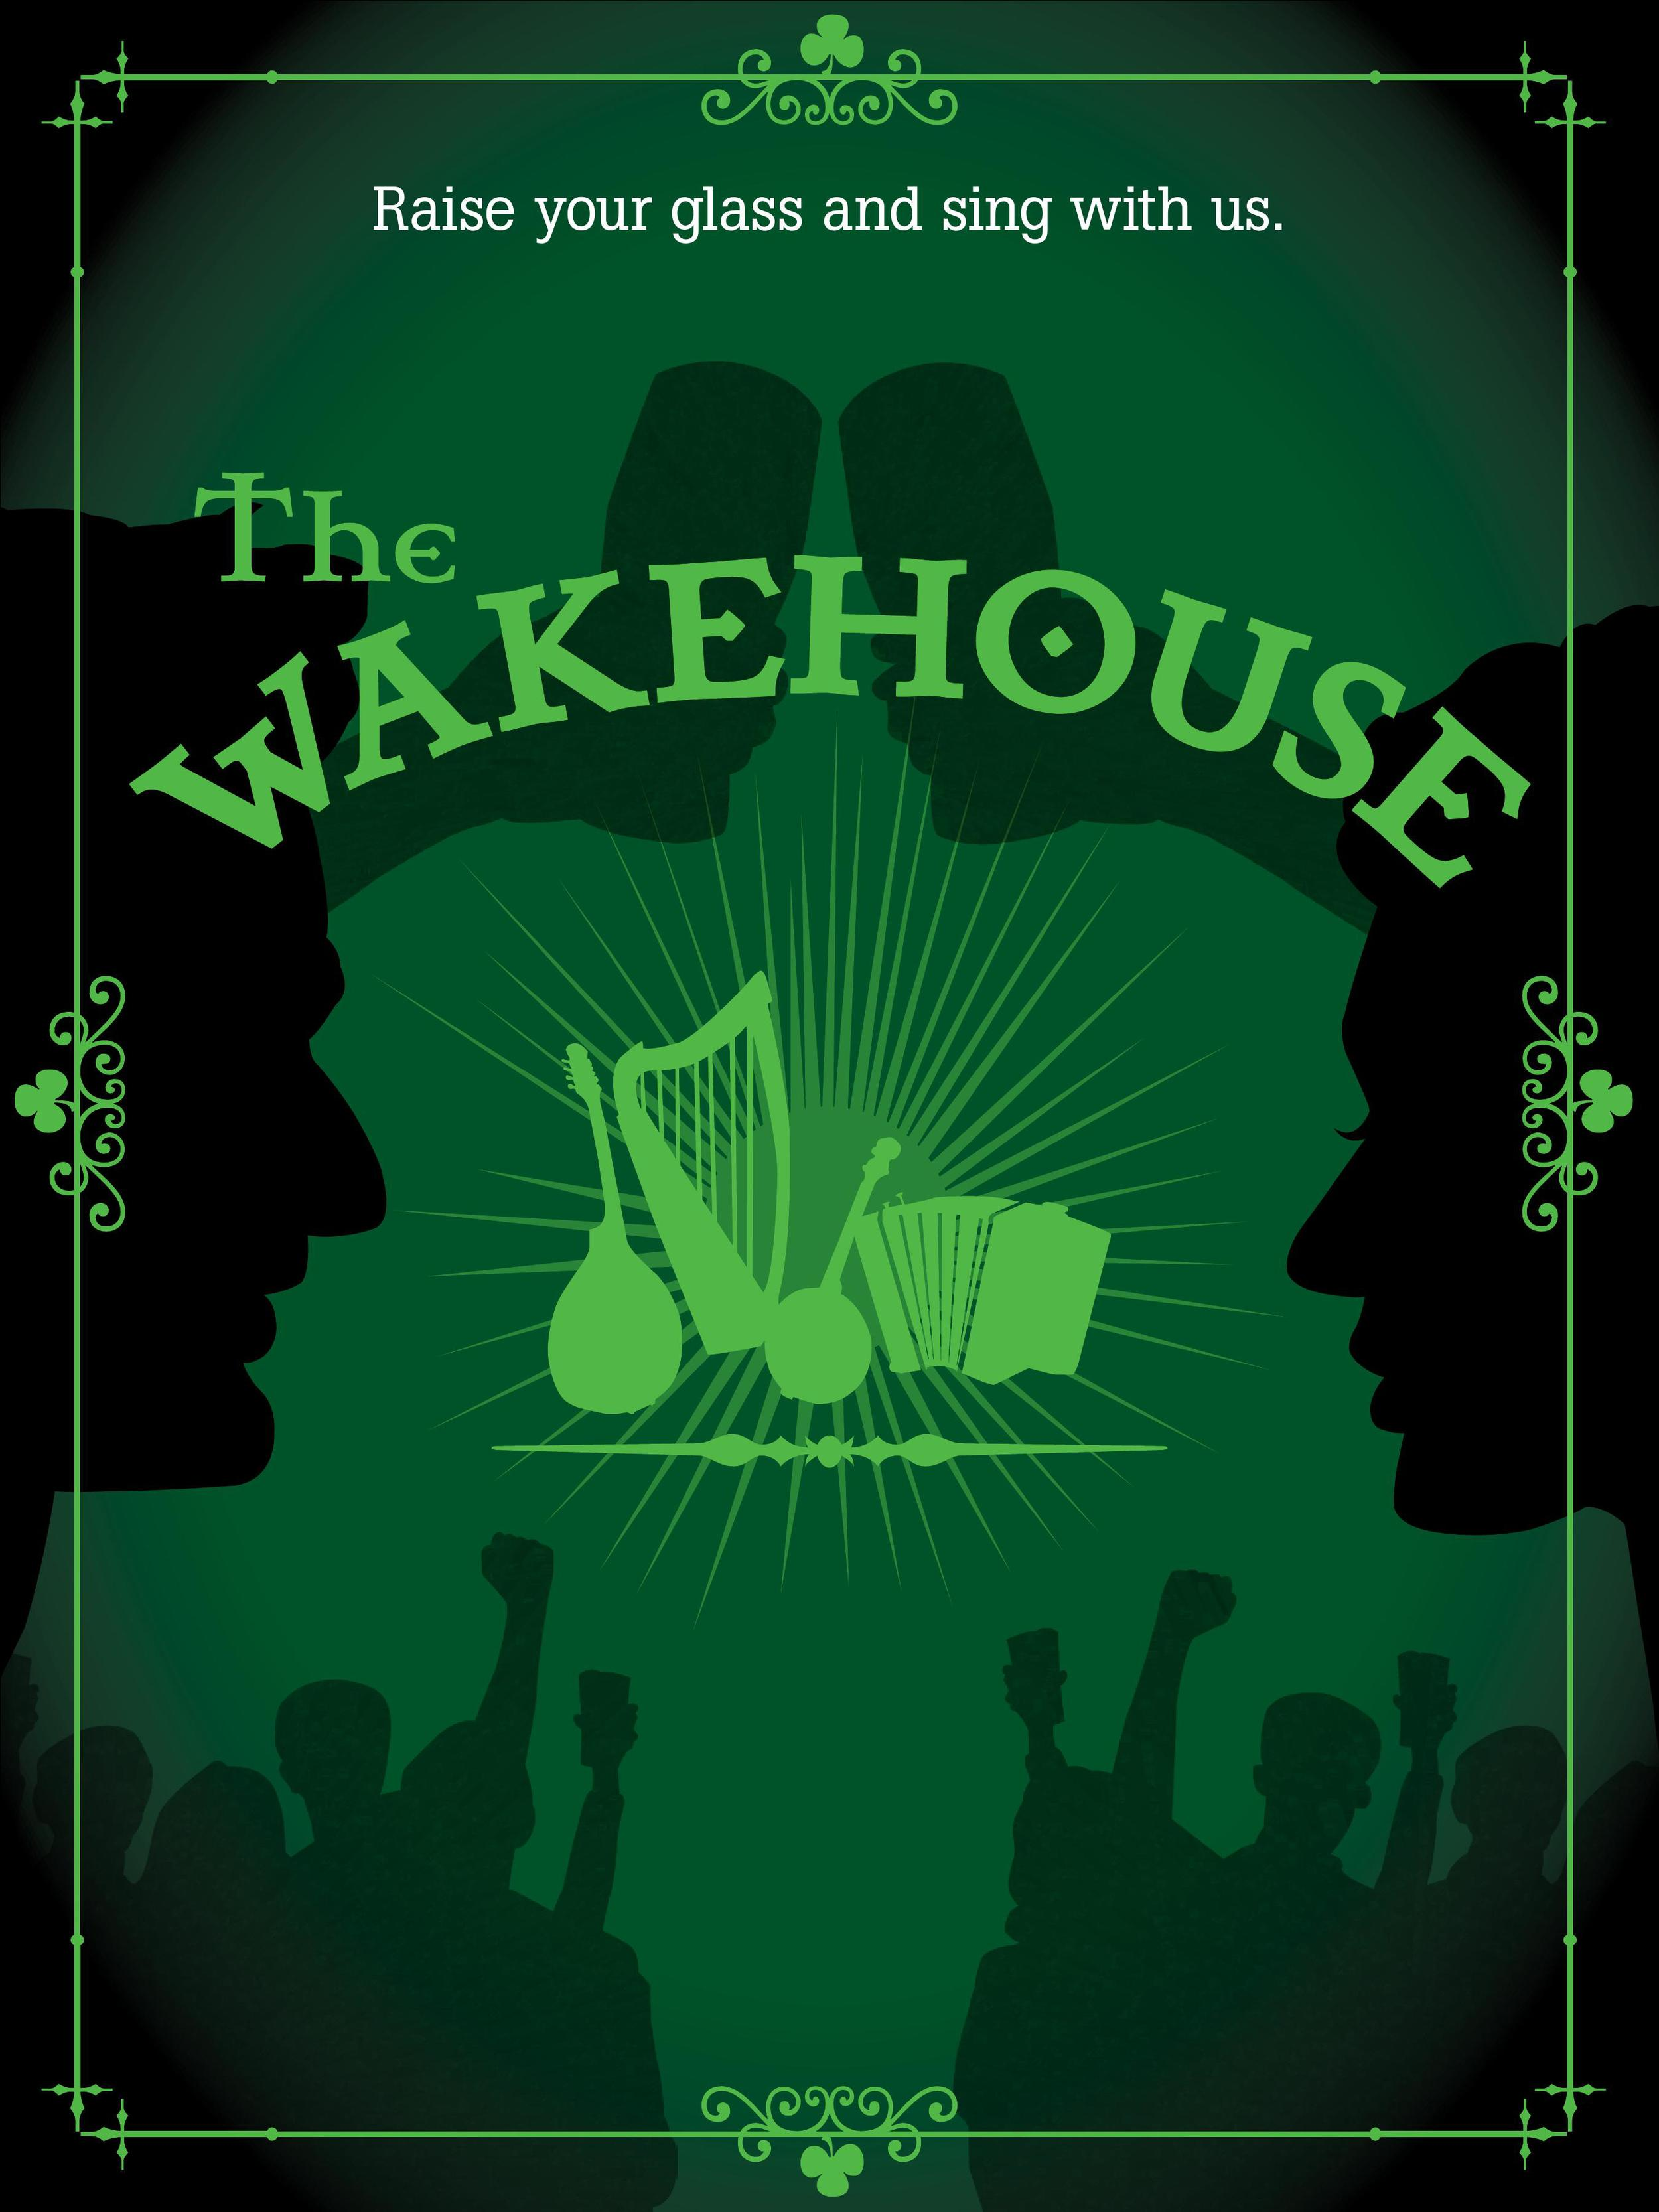 The Wakehouse_000001.jpg